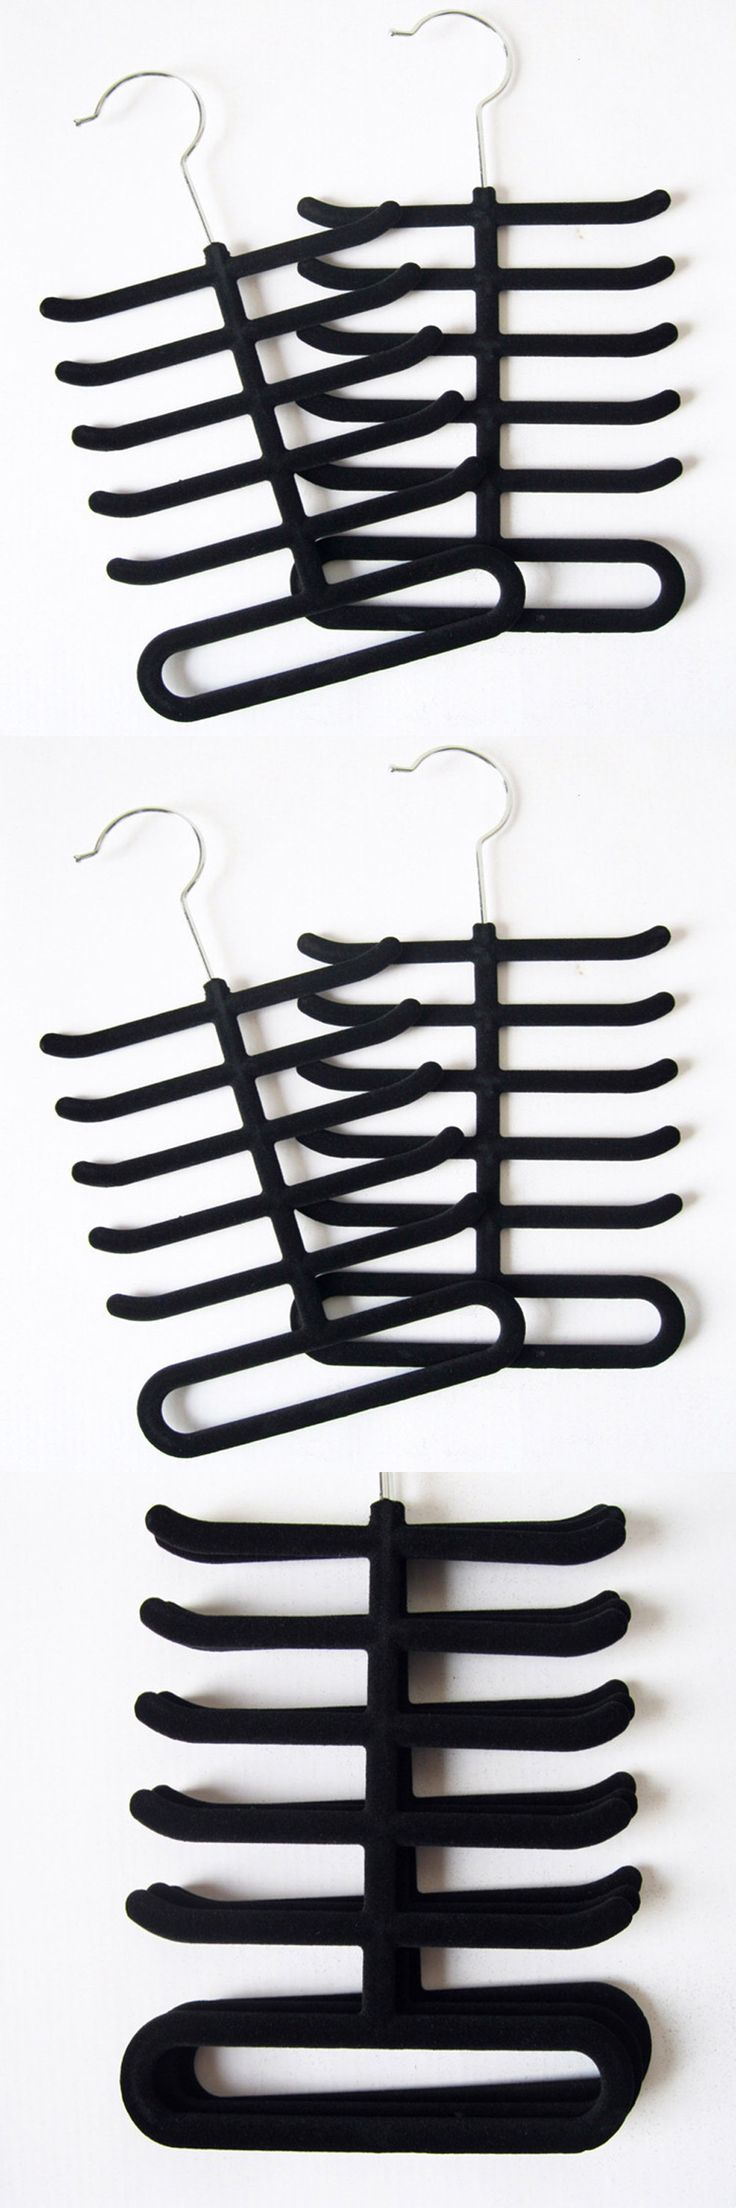 Brand New Nonslip Neck tie Belts Tie Hanger Velvet Fishbone Hangers Tie Hanger Rack Shawl Scarf Closet Holder Organizer